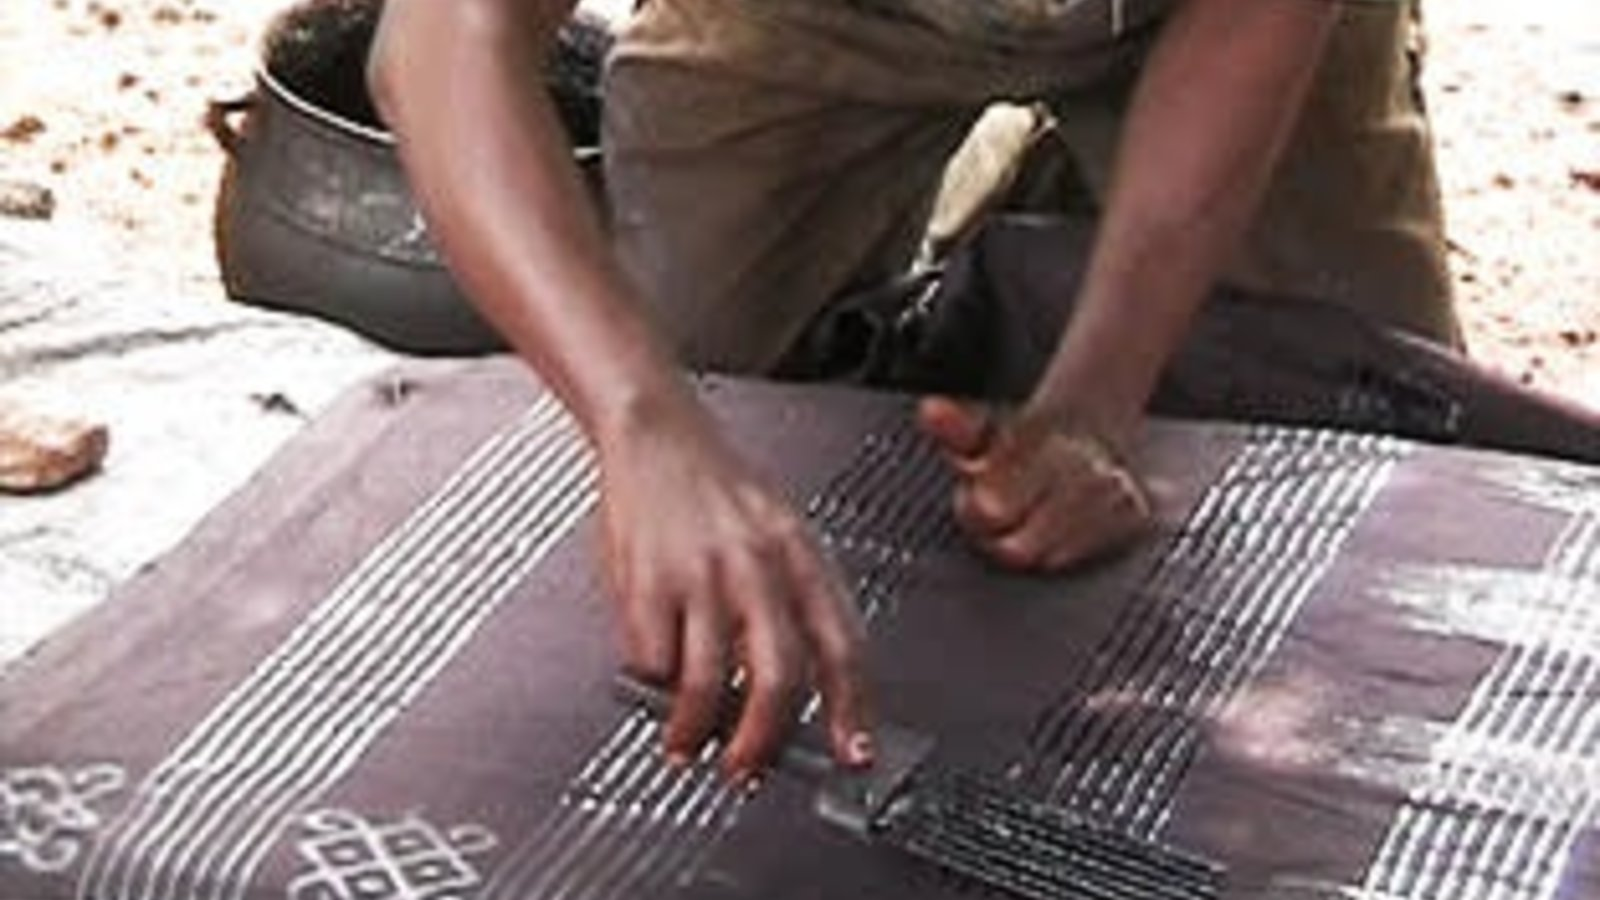 Adinkra: Printed Ceremonial Cloths Of Ghana